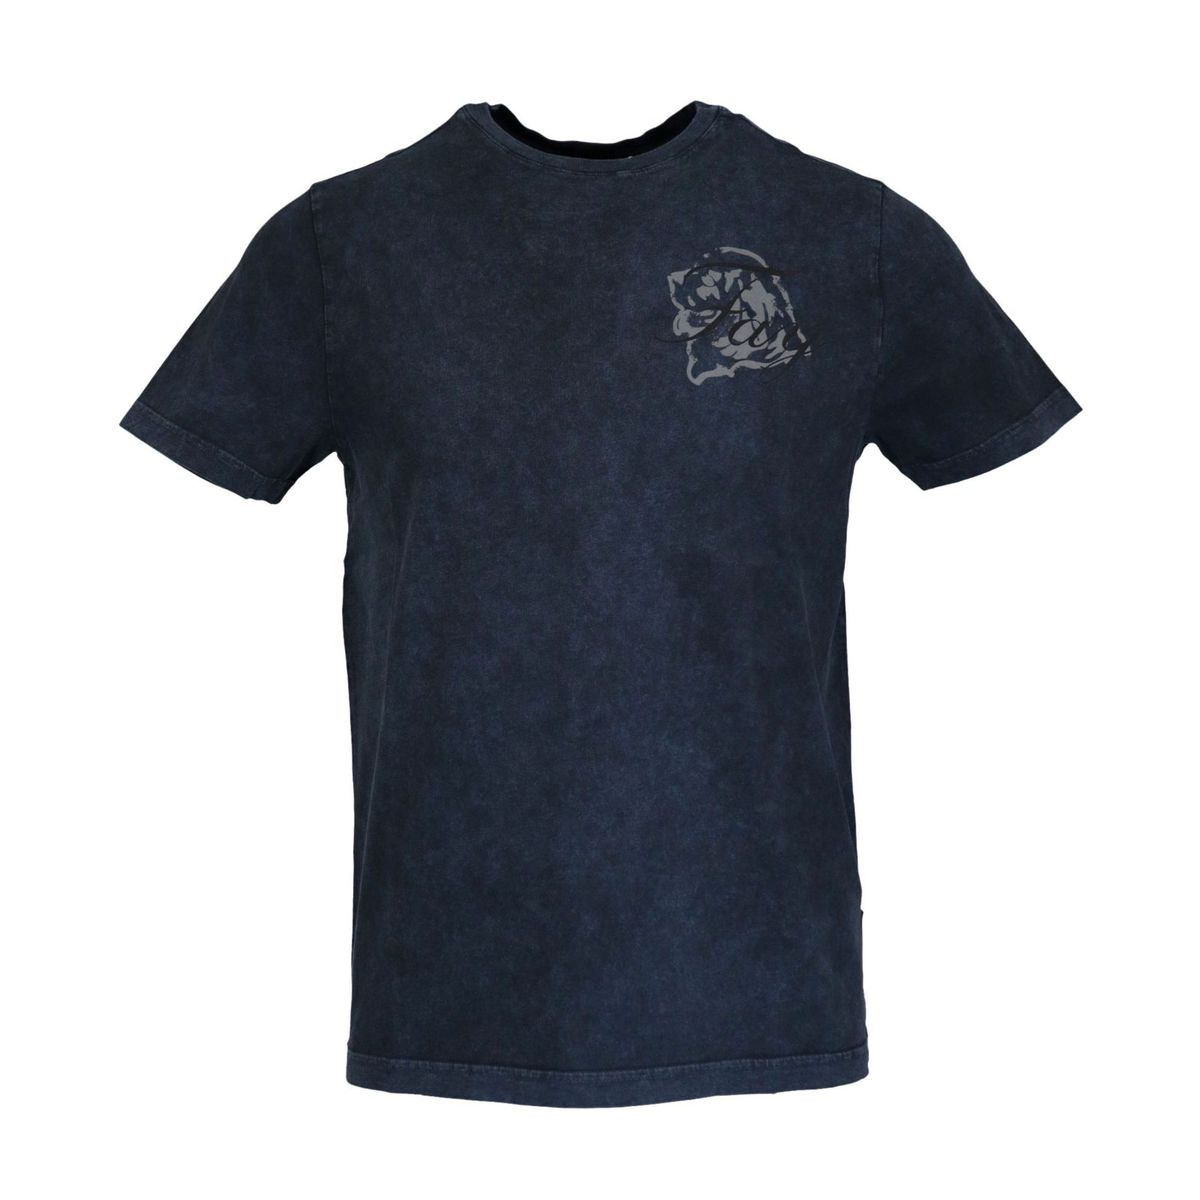 Garment dyed cotton short sleeve t-shirt Navy Fay